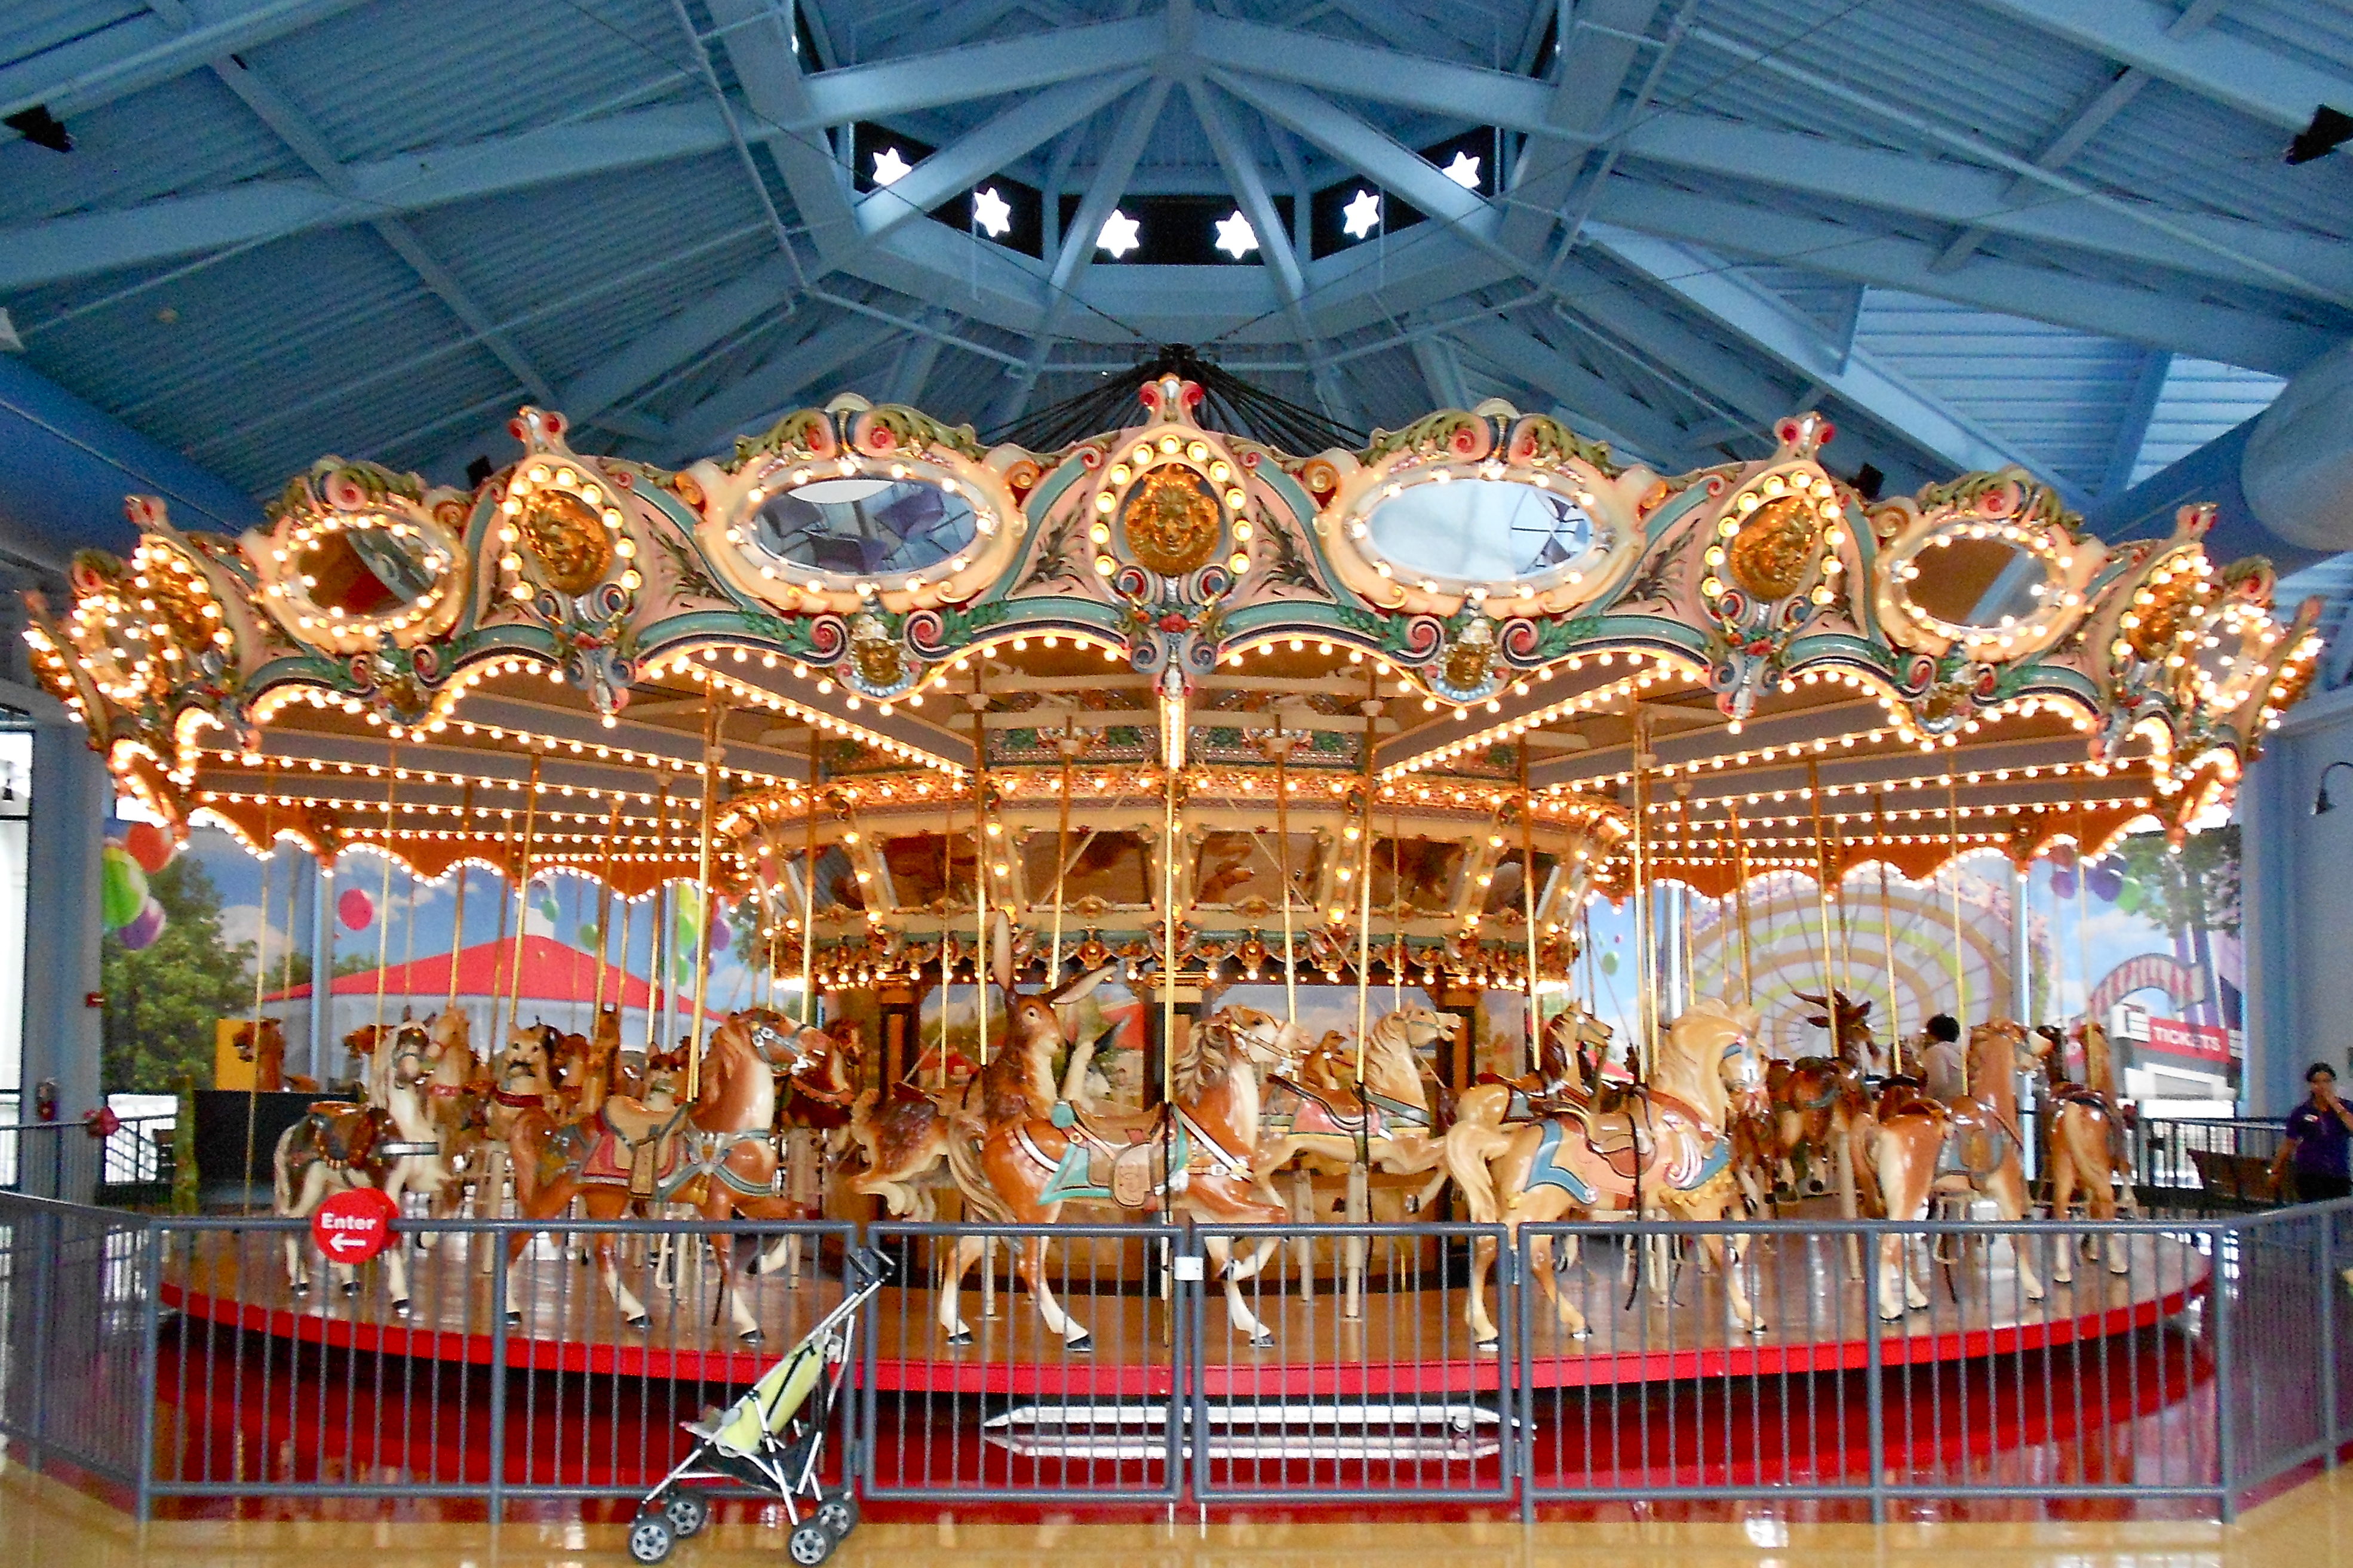 The Woodside Amusement Park Carousel, now at the Please Touch Museum